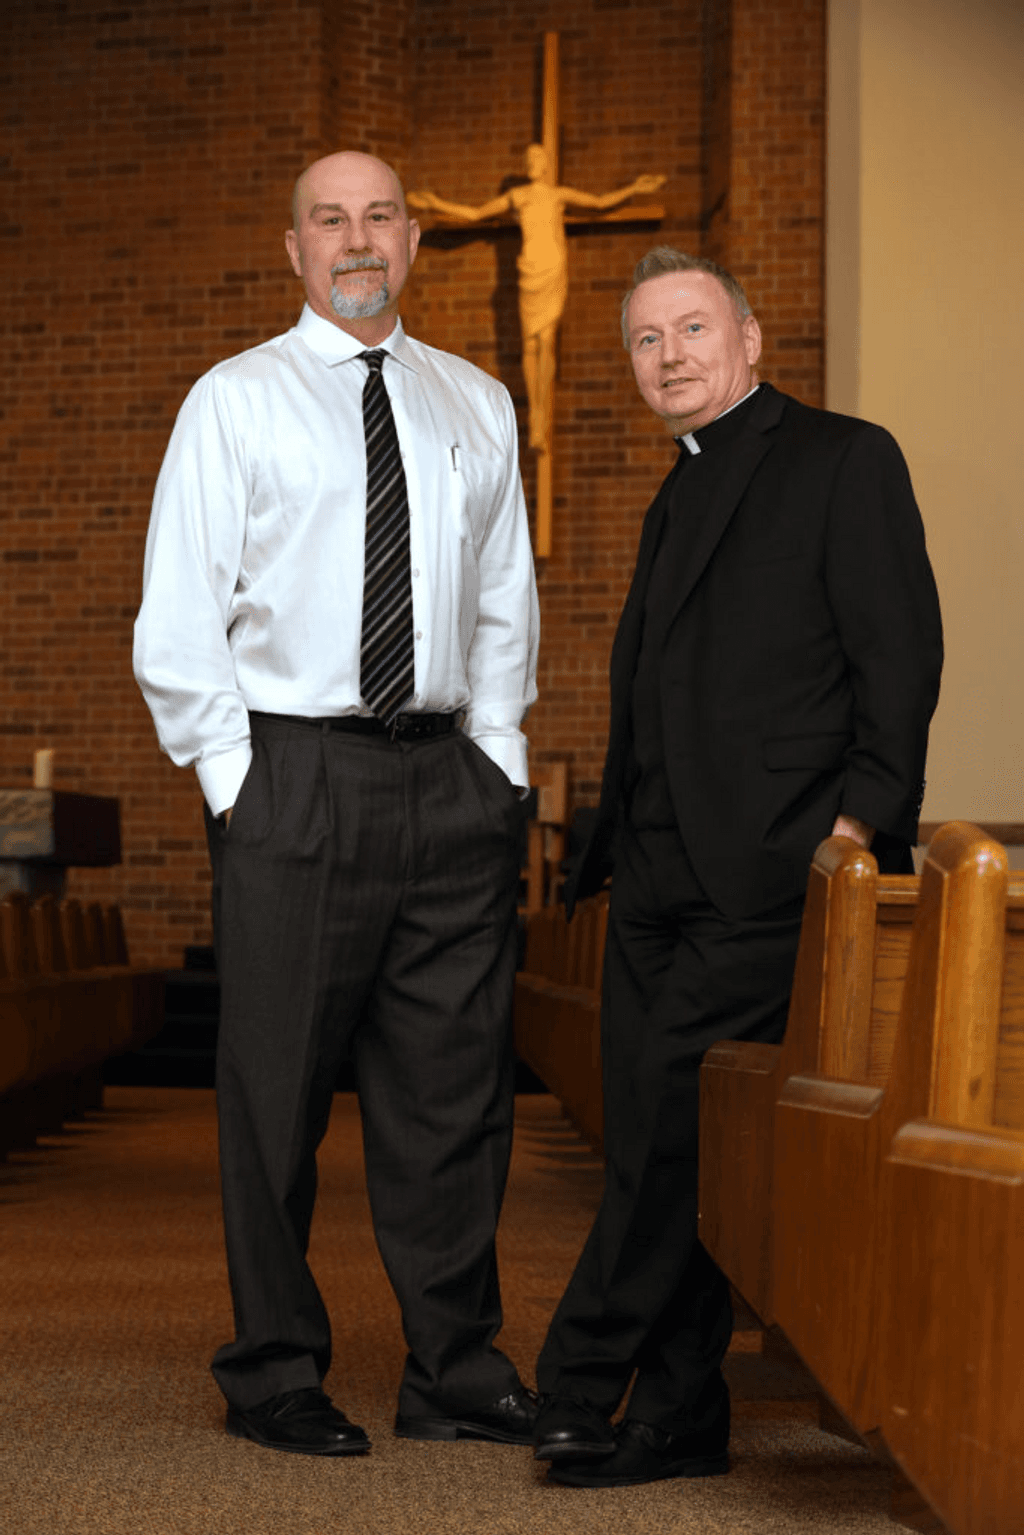 Joe D'Ambrosio with Rev. Neil Kookoothe, who worked for many years toward the exoneration.